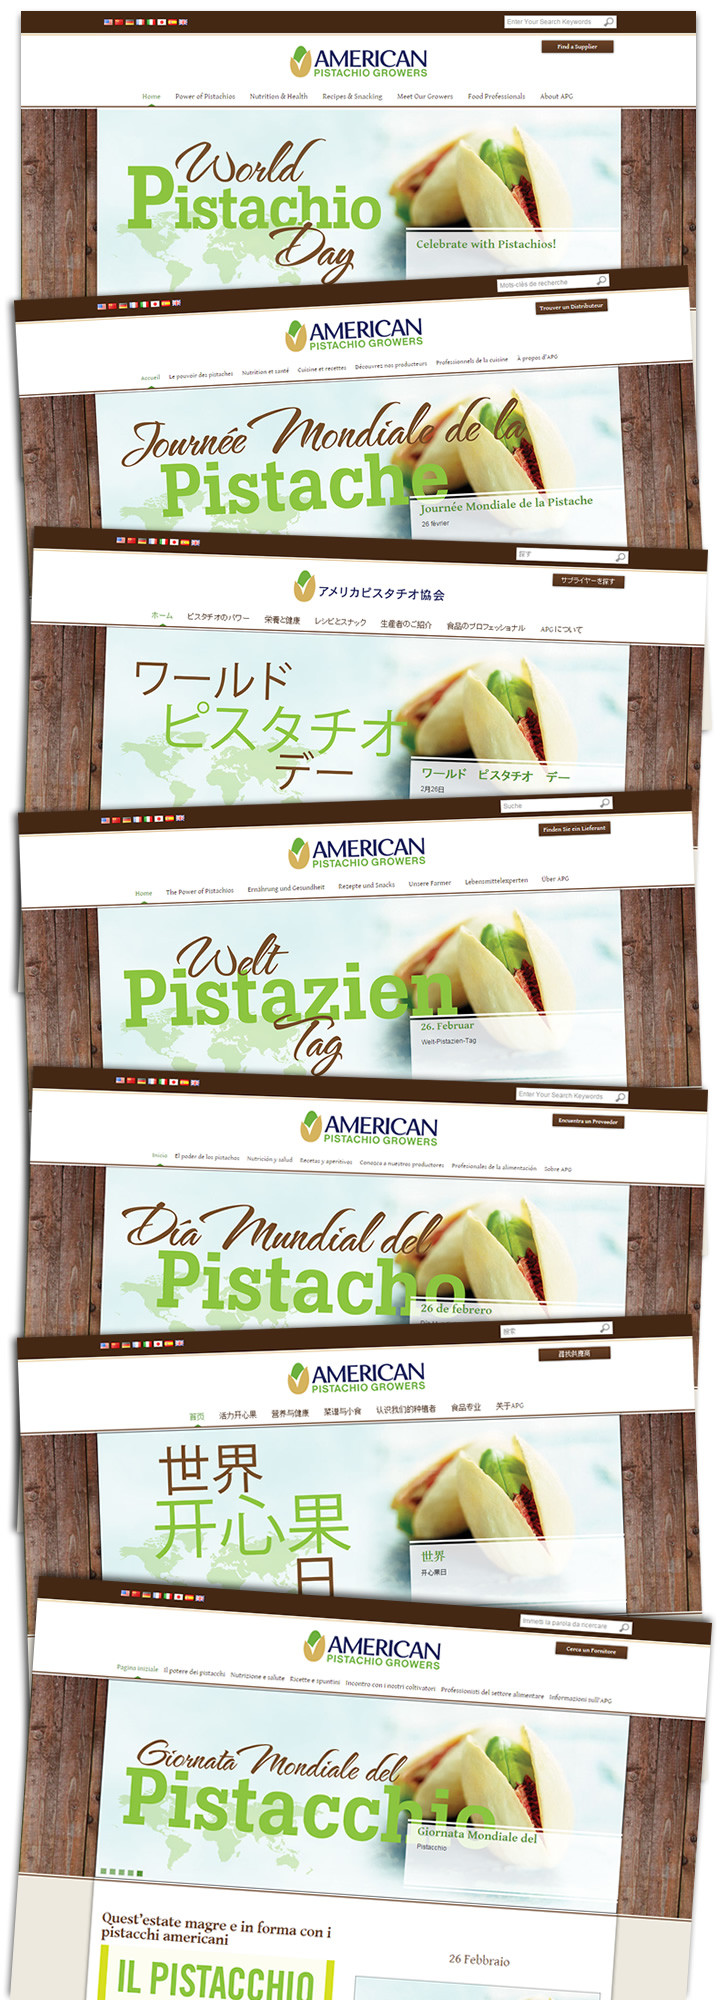 APG-Websites-World-Pistachio-Day